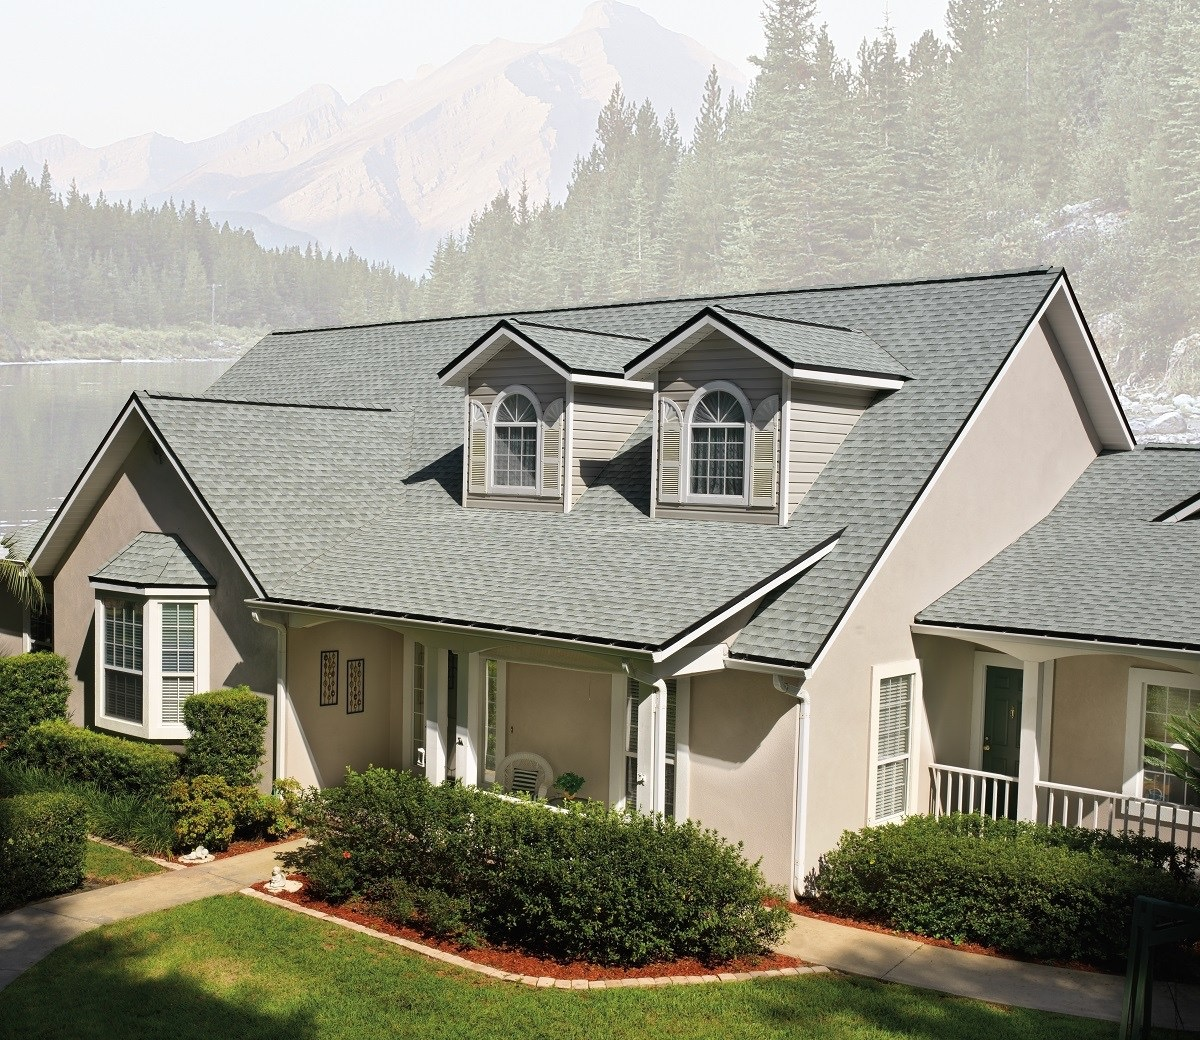 roofing in charlotte, roofing contractors, residential roofing eastover nc, quality roofers cornelius nc